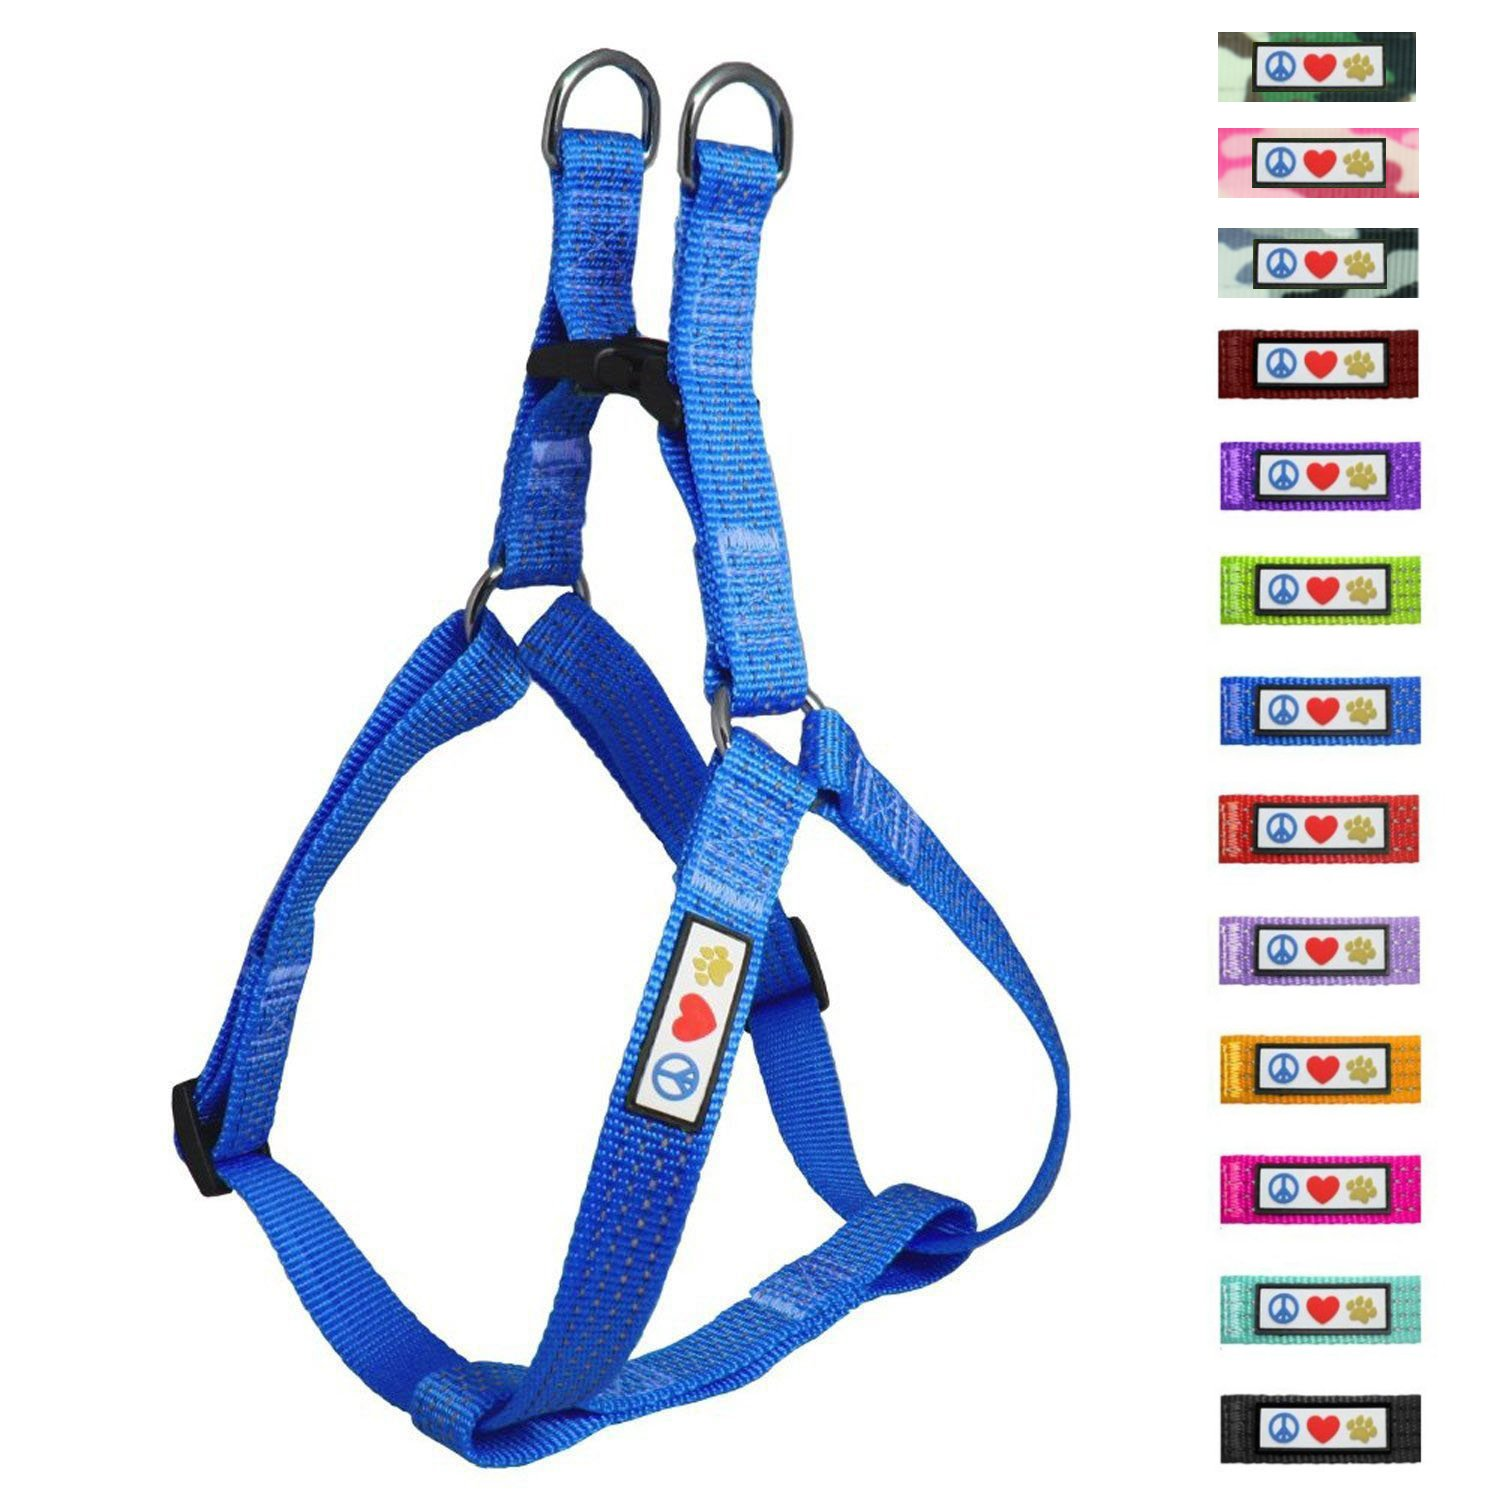 Pawtitas Pet Reflective Step in Dog Harness Reflective Vest Harness, Comfort Control, Training Walking Your Puppy/Dog Small Dog Harness S Blue Dog Harness